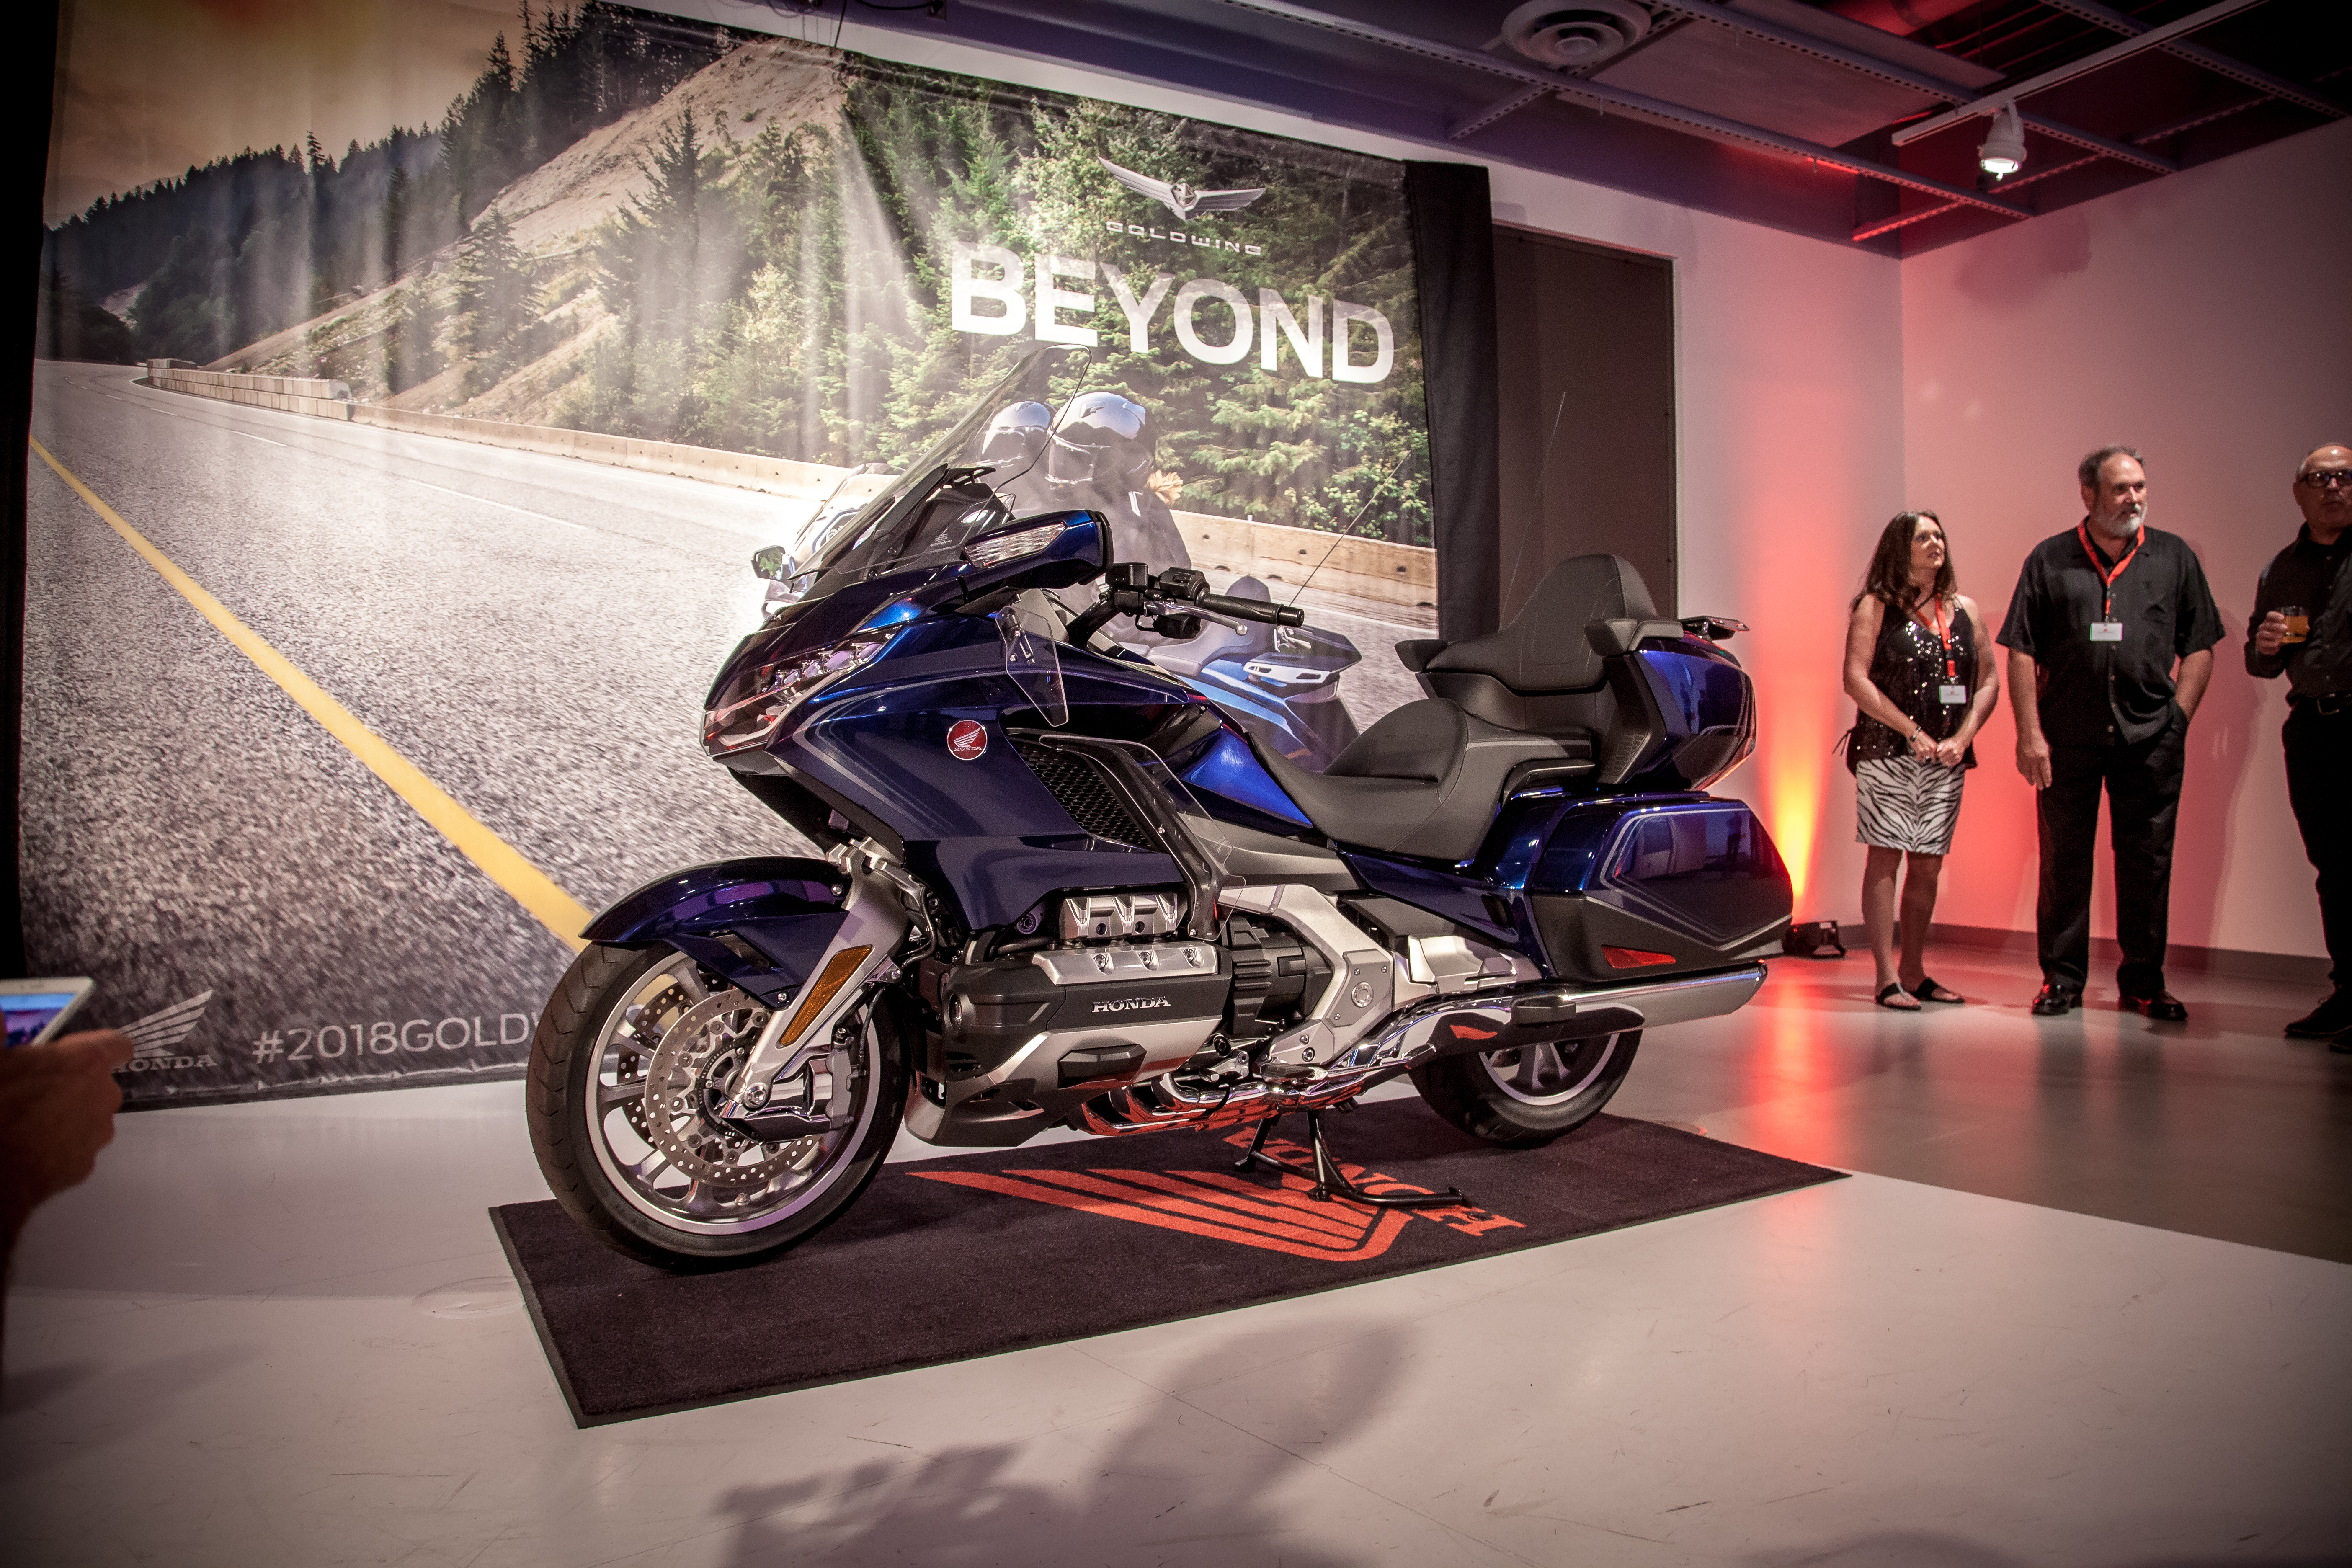 2018 honda gold wing tour first ride review revzilla 2018 honda gold wing first look discovering what lies beyond fandeluxe Gallery